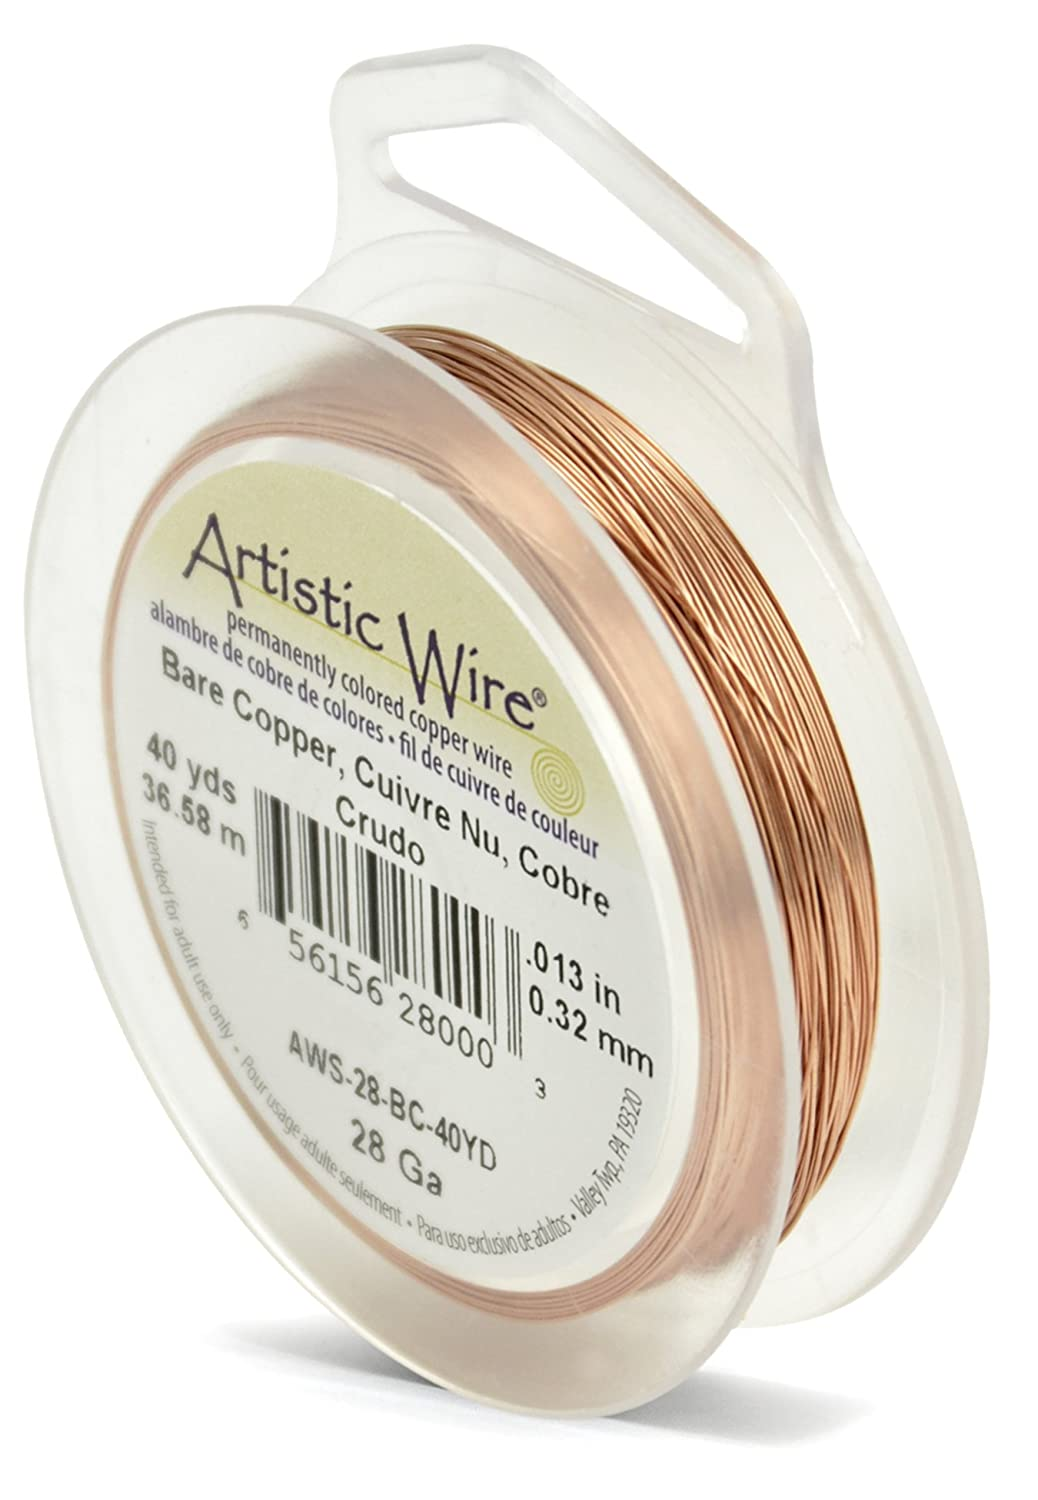 Artistic wire 40 yd 28 gauge wire bare copper amazon artistic wire 40 yd 28 gauge wire bare copper amazon kitchen home greentooth Choice Image